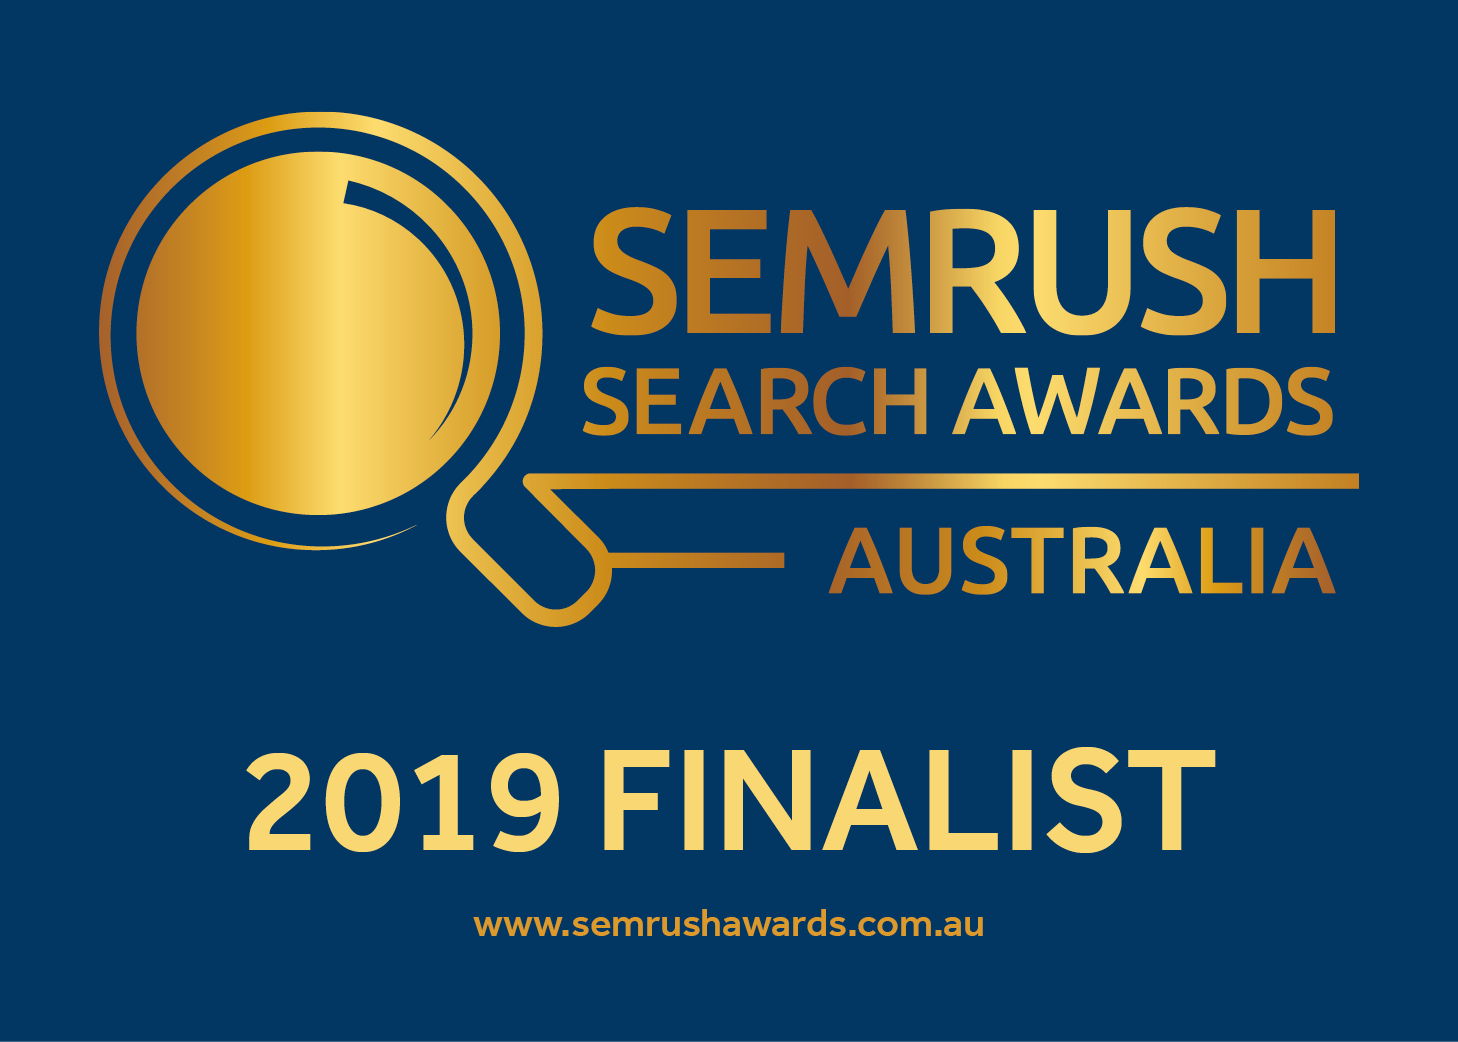 Semrush Search Awards